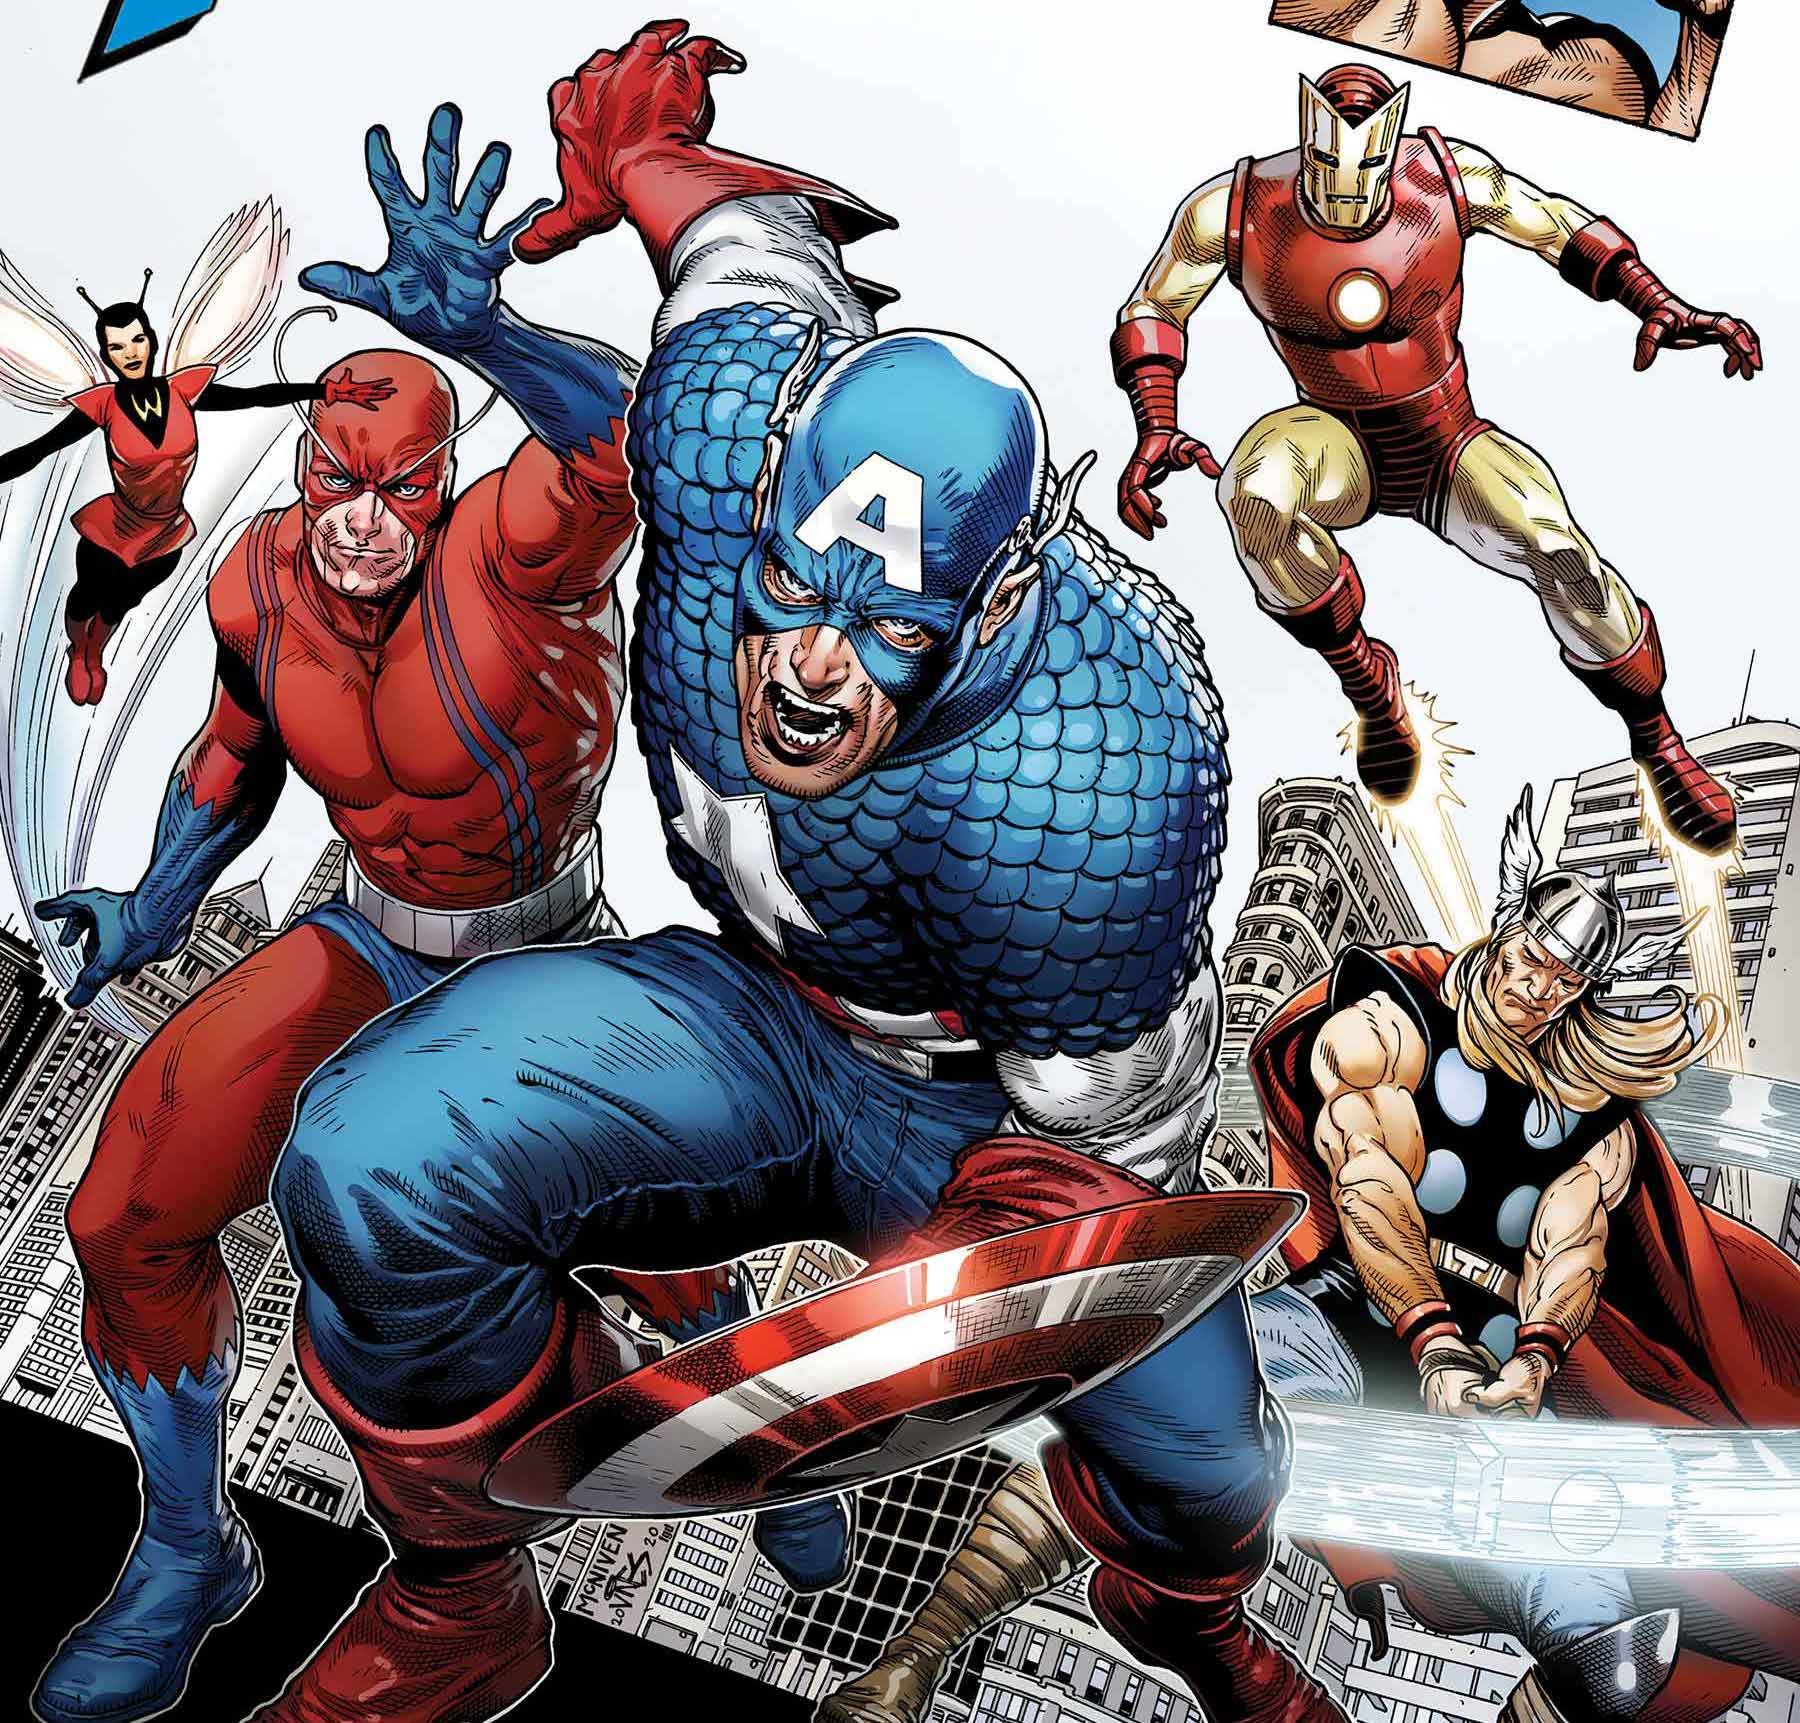 Marvel celebrating 80 years of Captain America with giant-sized tribute